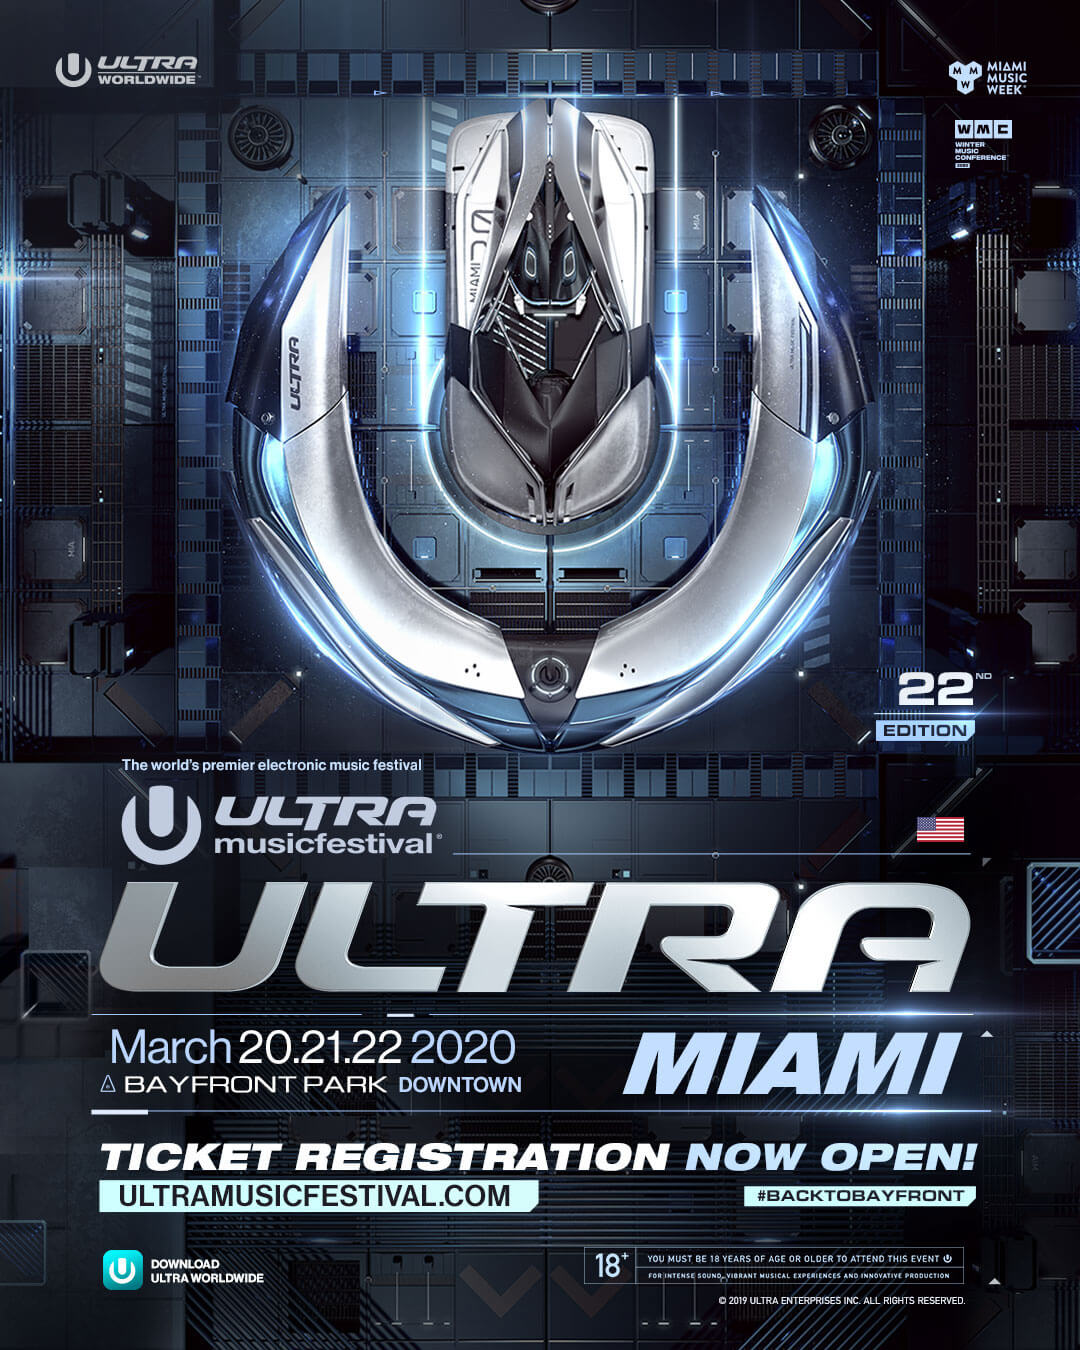 ULTRA Music Festival 2020 Ticket Registration Now Open